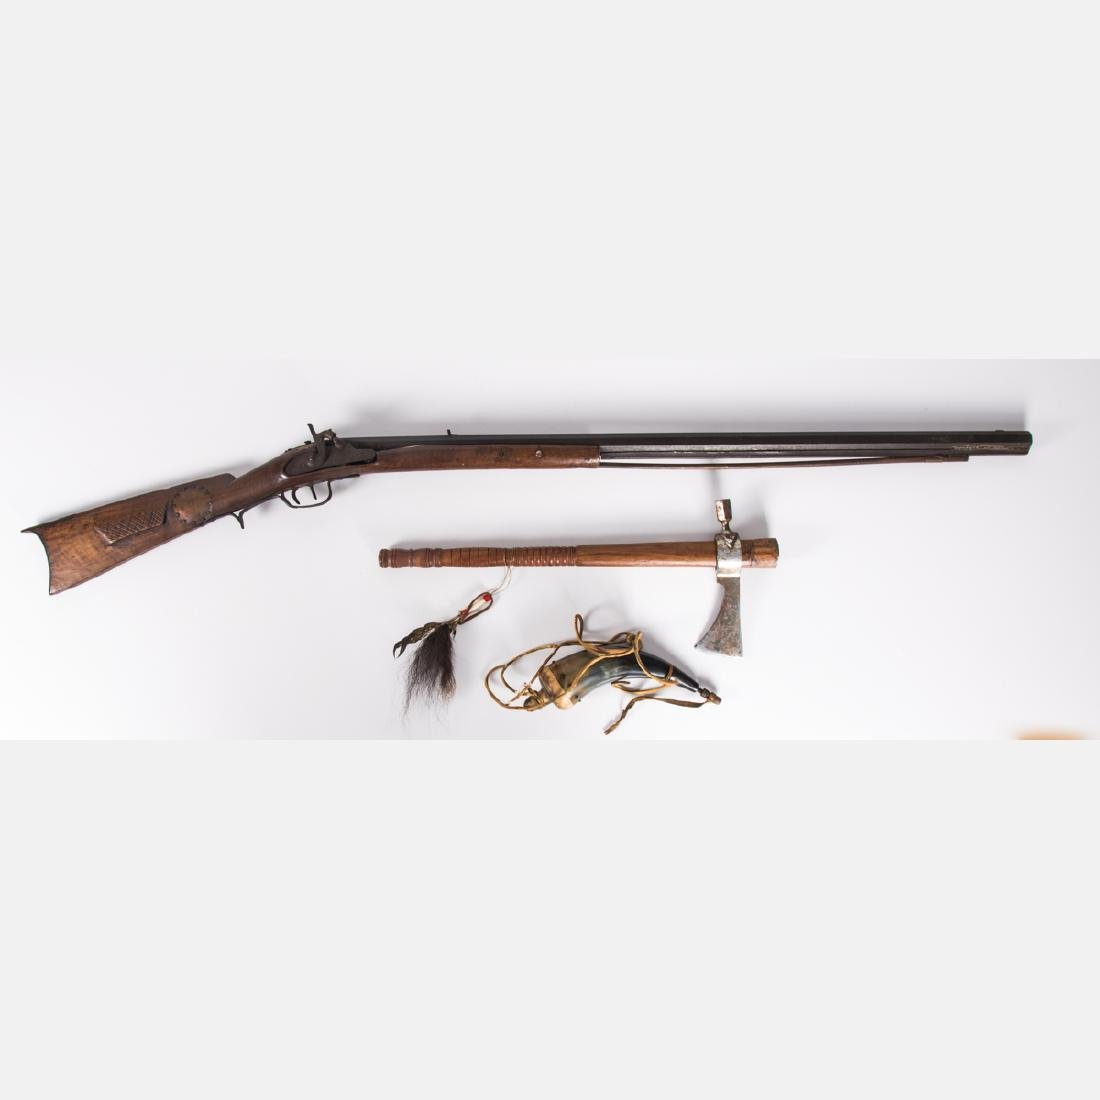 A Brass and Wood Percussion Musket Rifle, 19th Century,